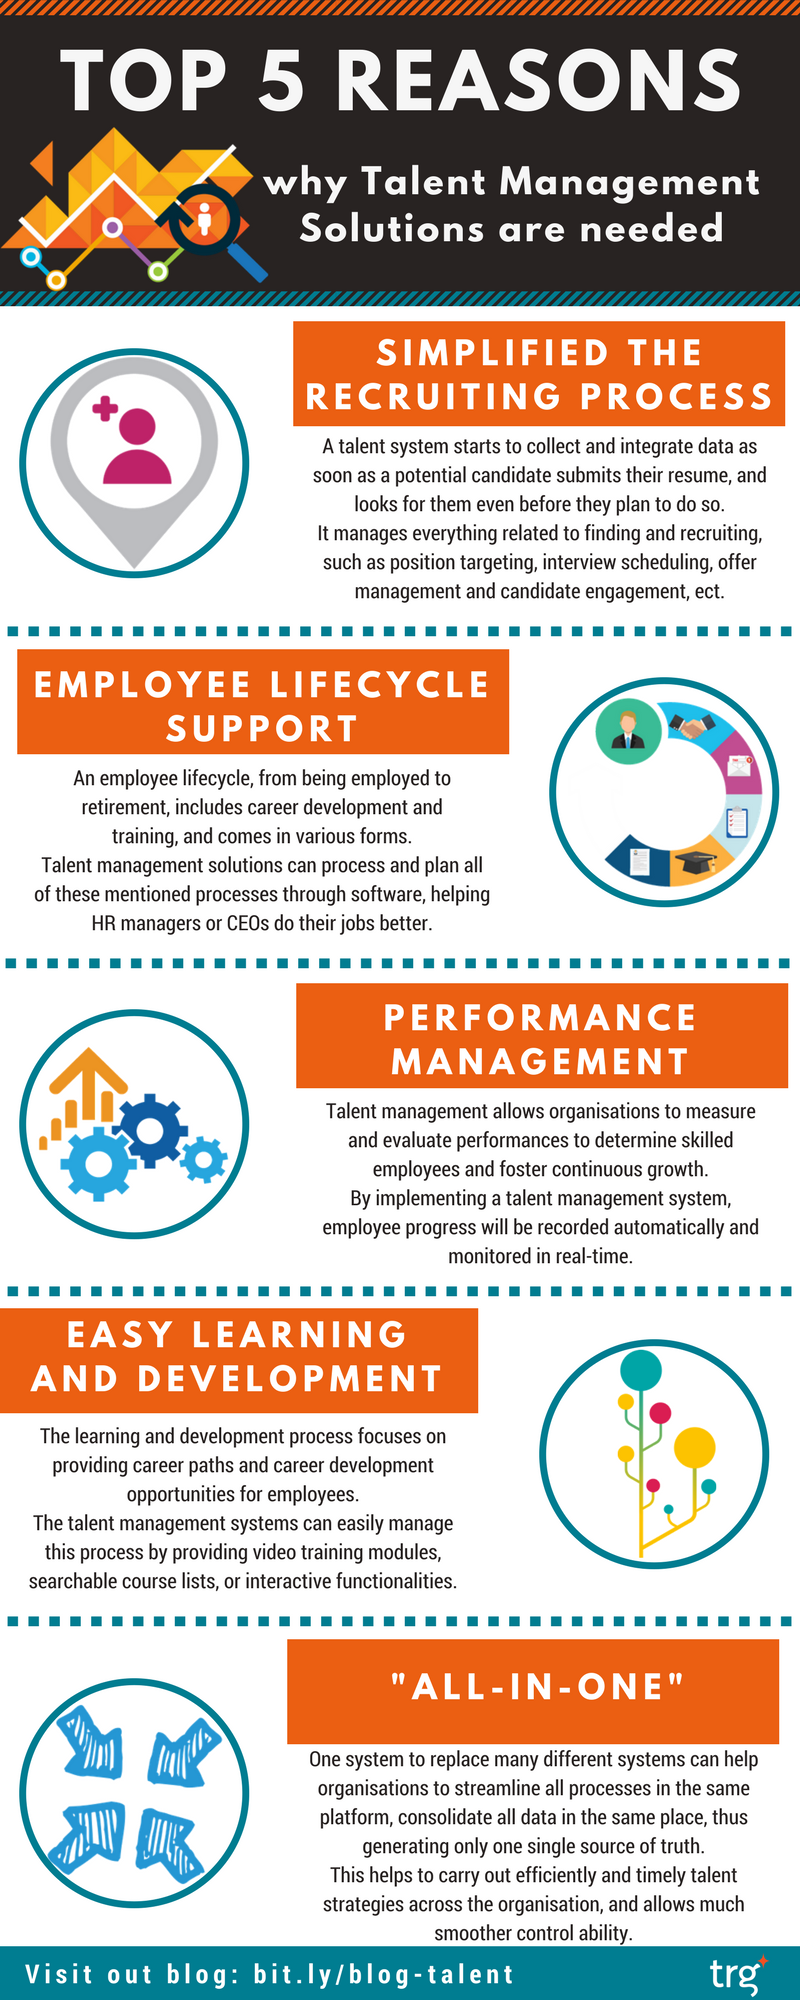 Reasons to apply a talent management system If your organisation's HR department is trying hard to track the employee's lifecycle and the results are not positive, maybe it's time to apply talent management solutions. Here are five reasons why talent management systems are needed